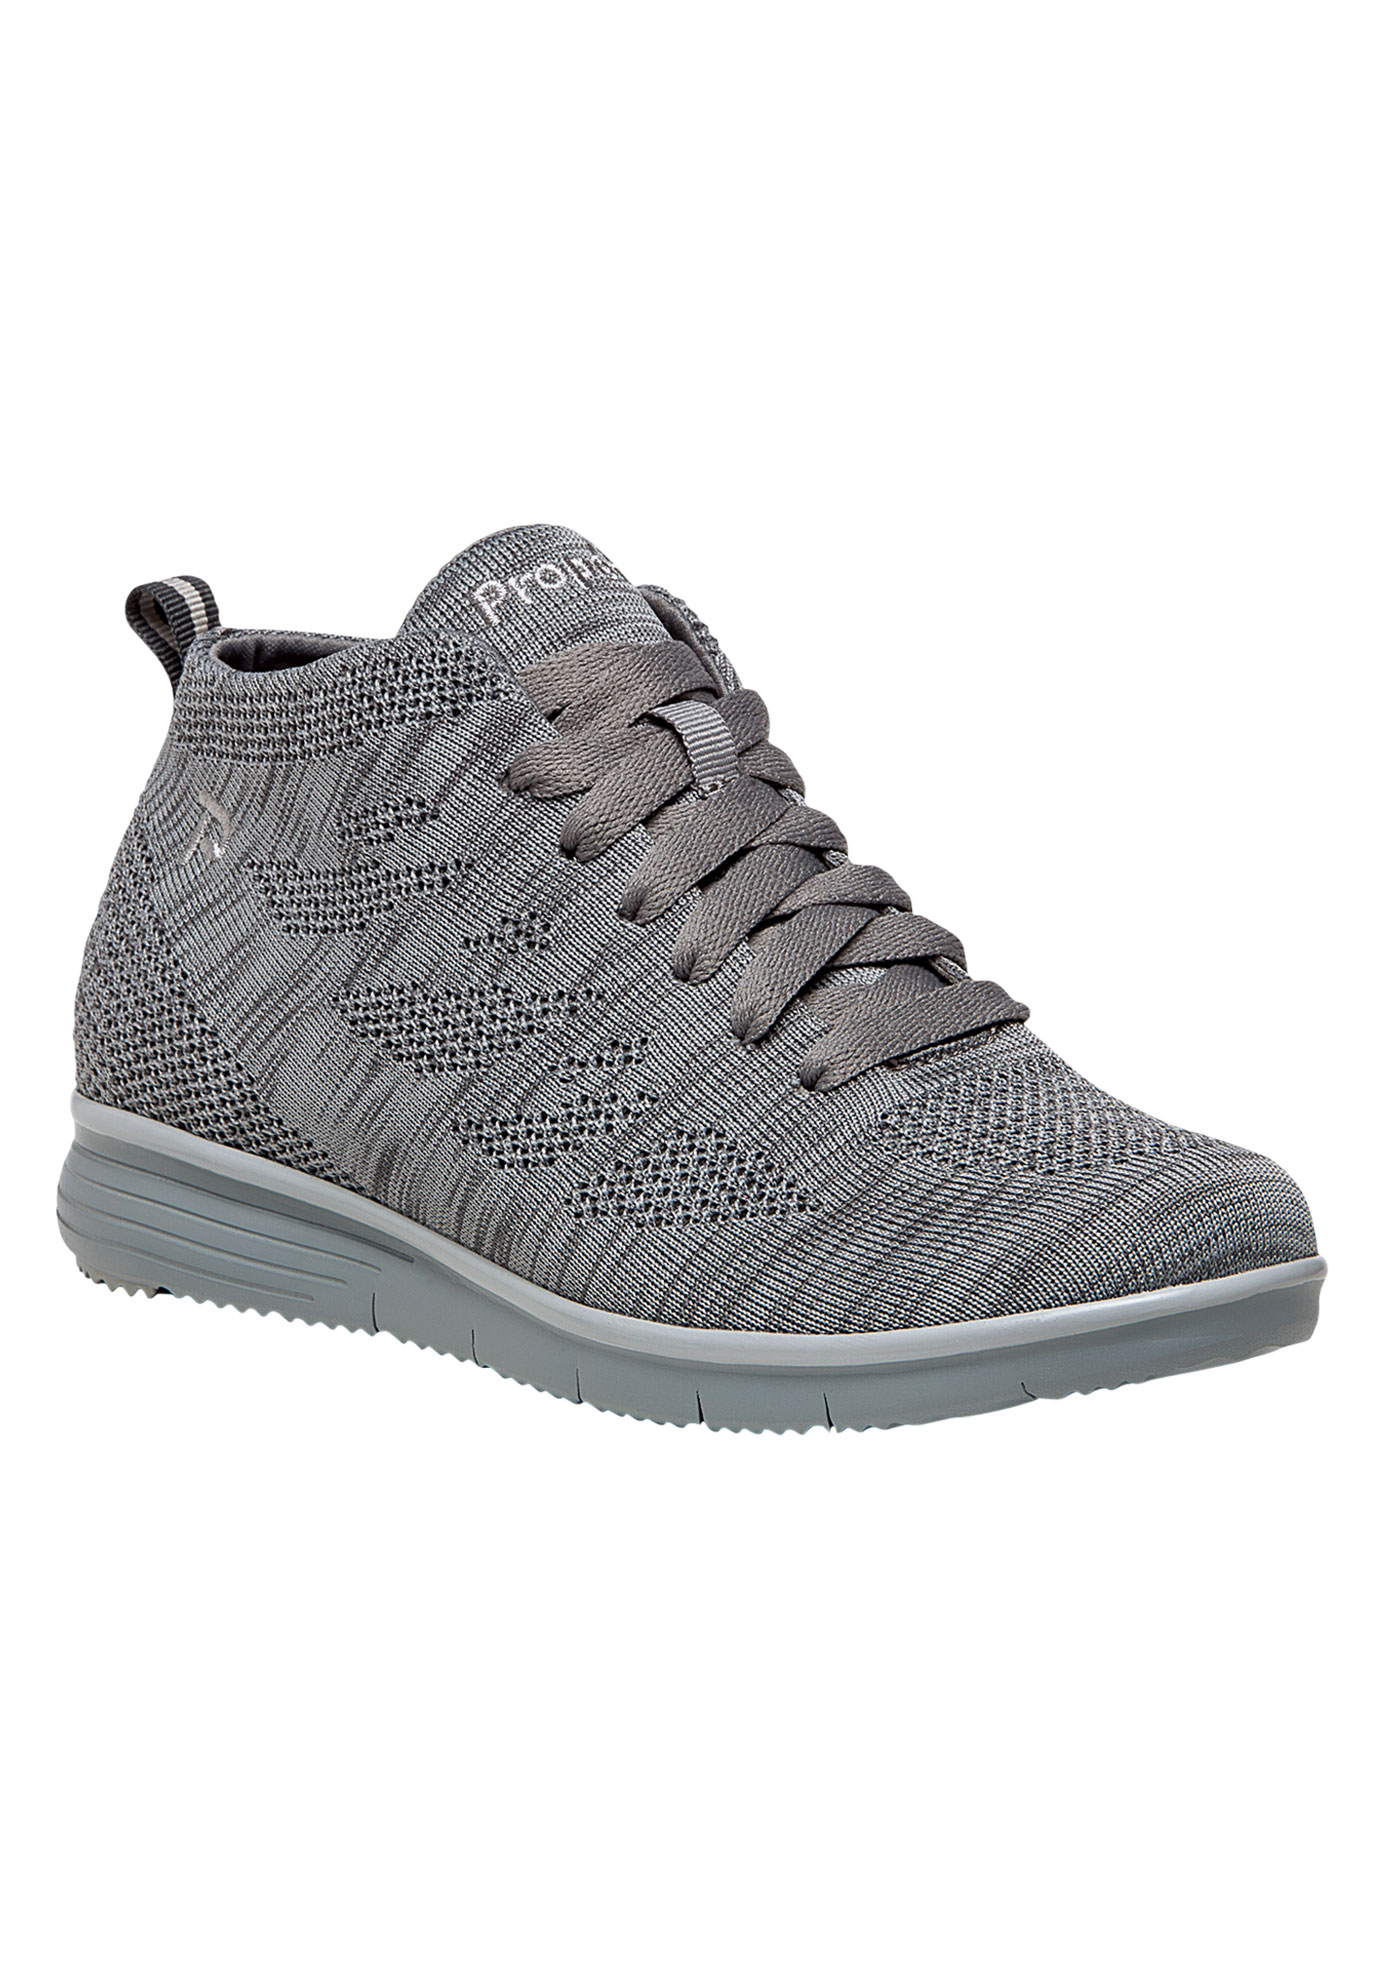 TravelFit Hi Sneakers by Propet®,